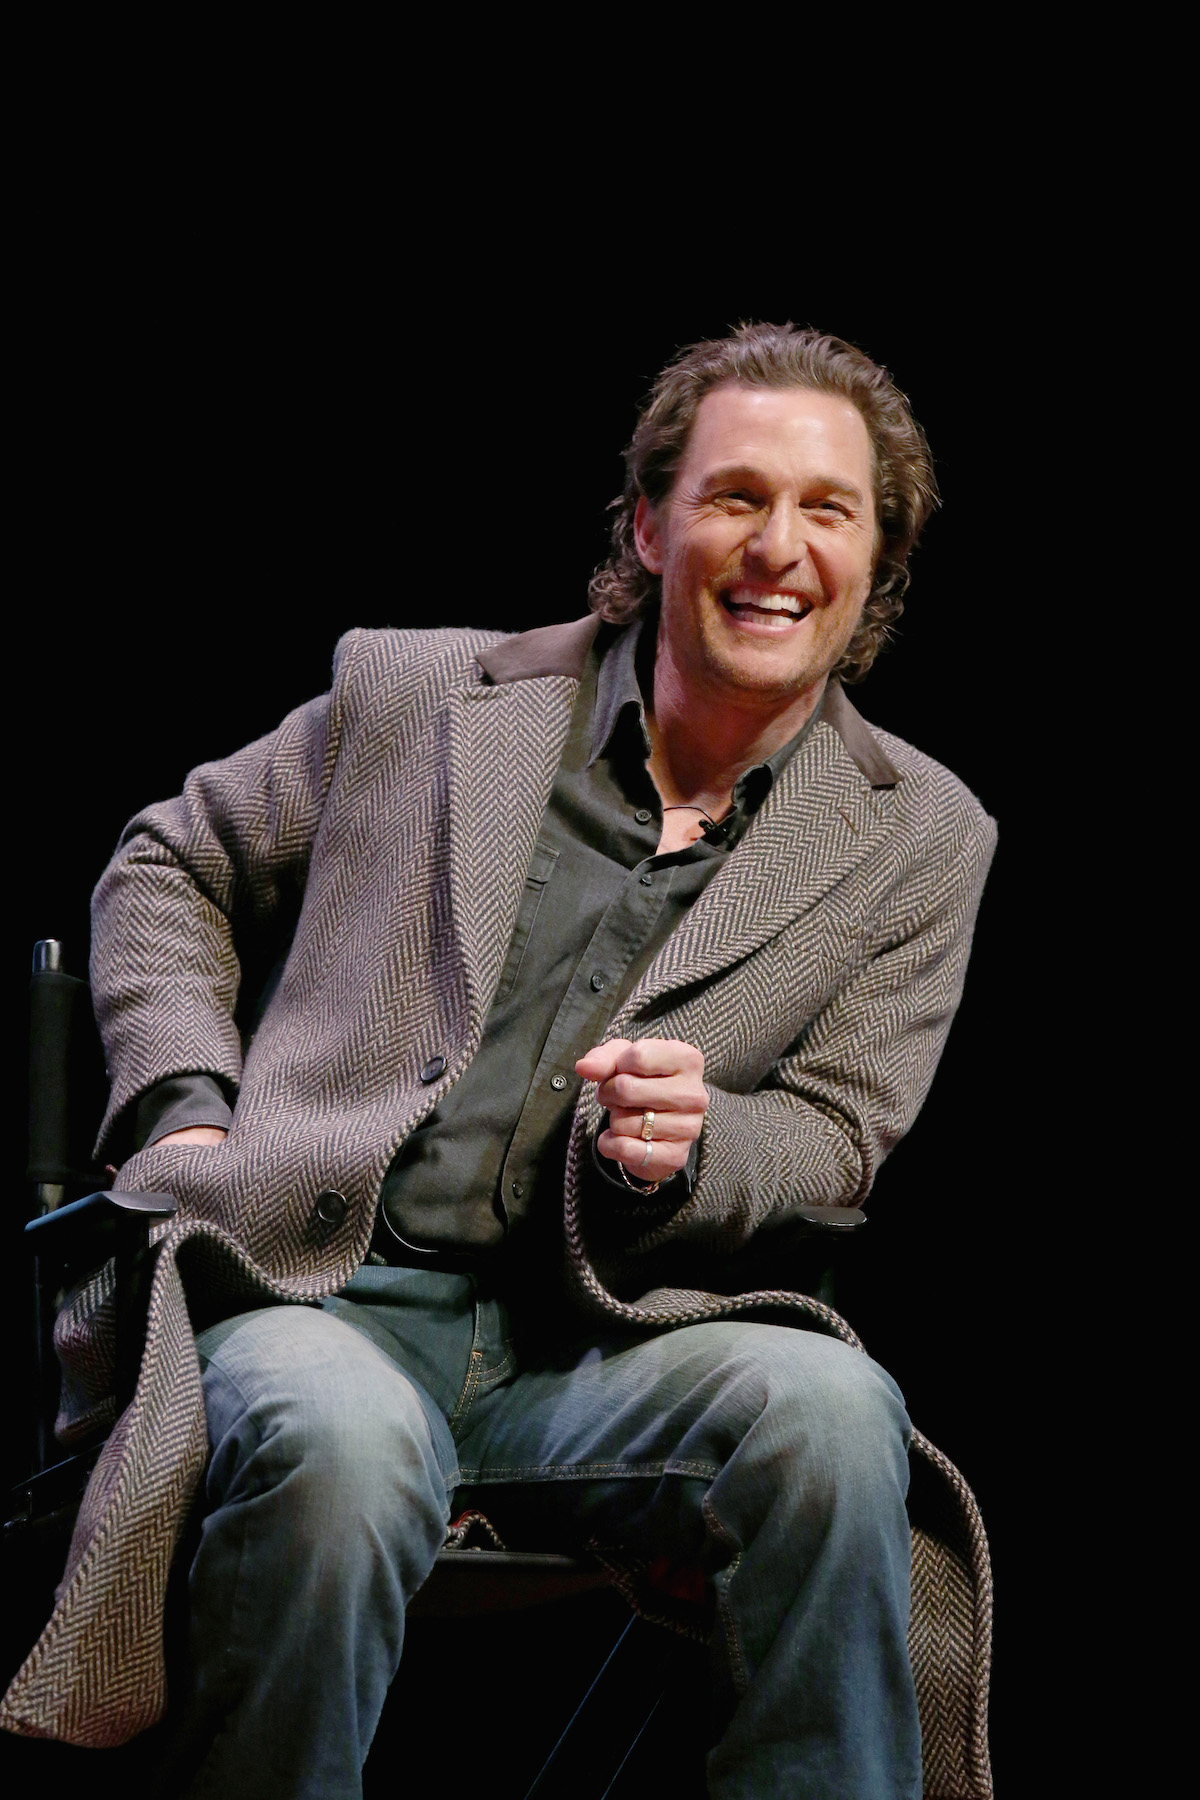 Matthew McConaughey sits on stage in a brown patterned coat , as he smiles to an audience on stage